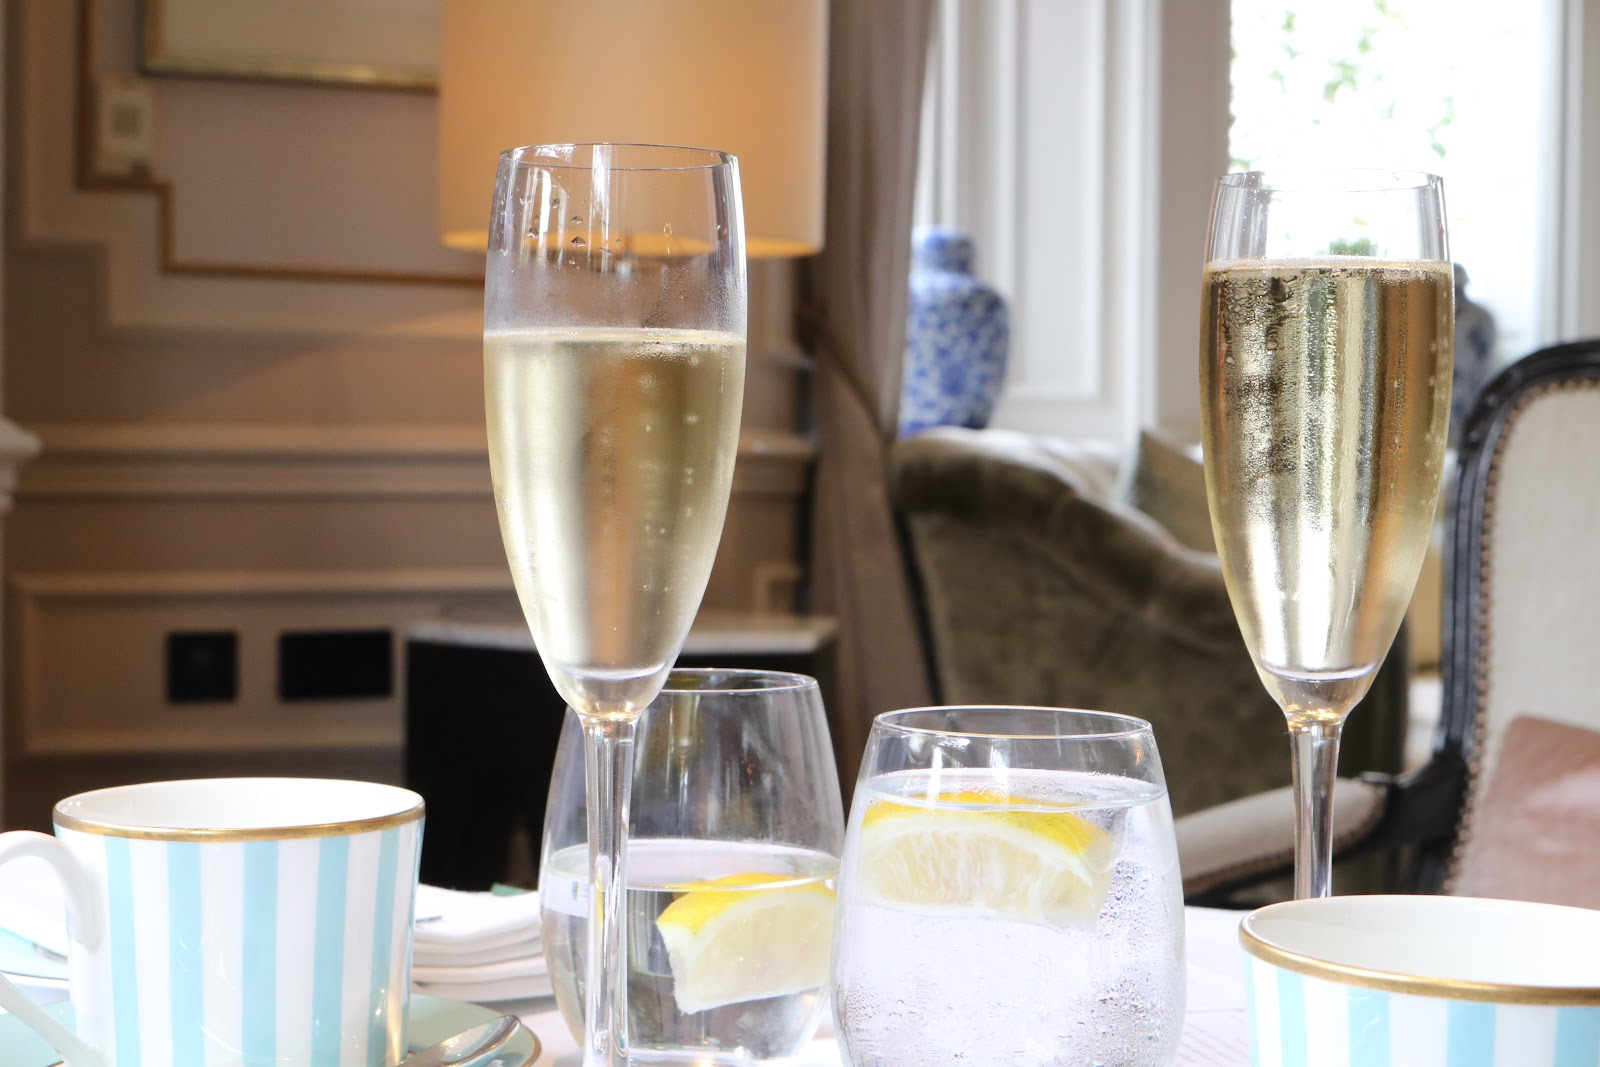 Champagne at Afternoon Tea, The Kensington Hotel, Kensington, Chelsea, London